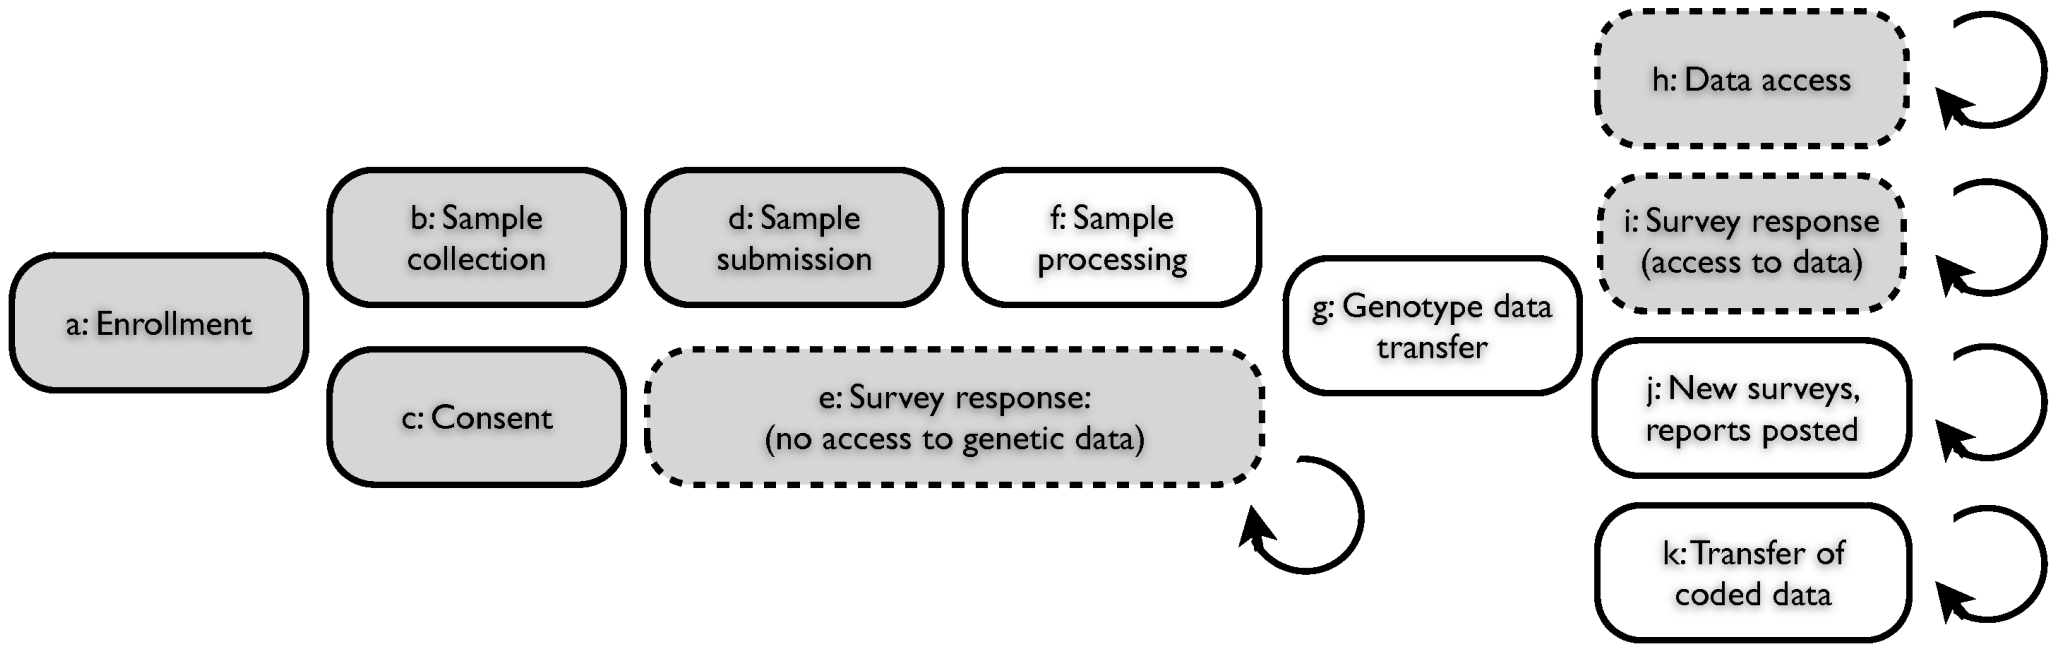 Web-based accrual of genotype and phenotype data via a personal genetic information service.